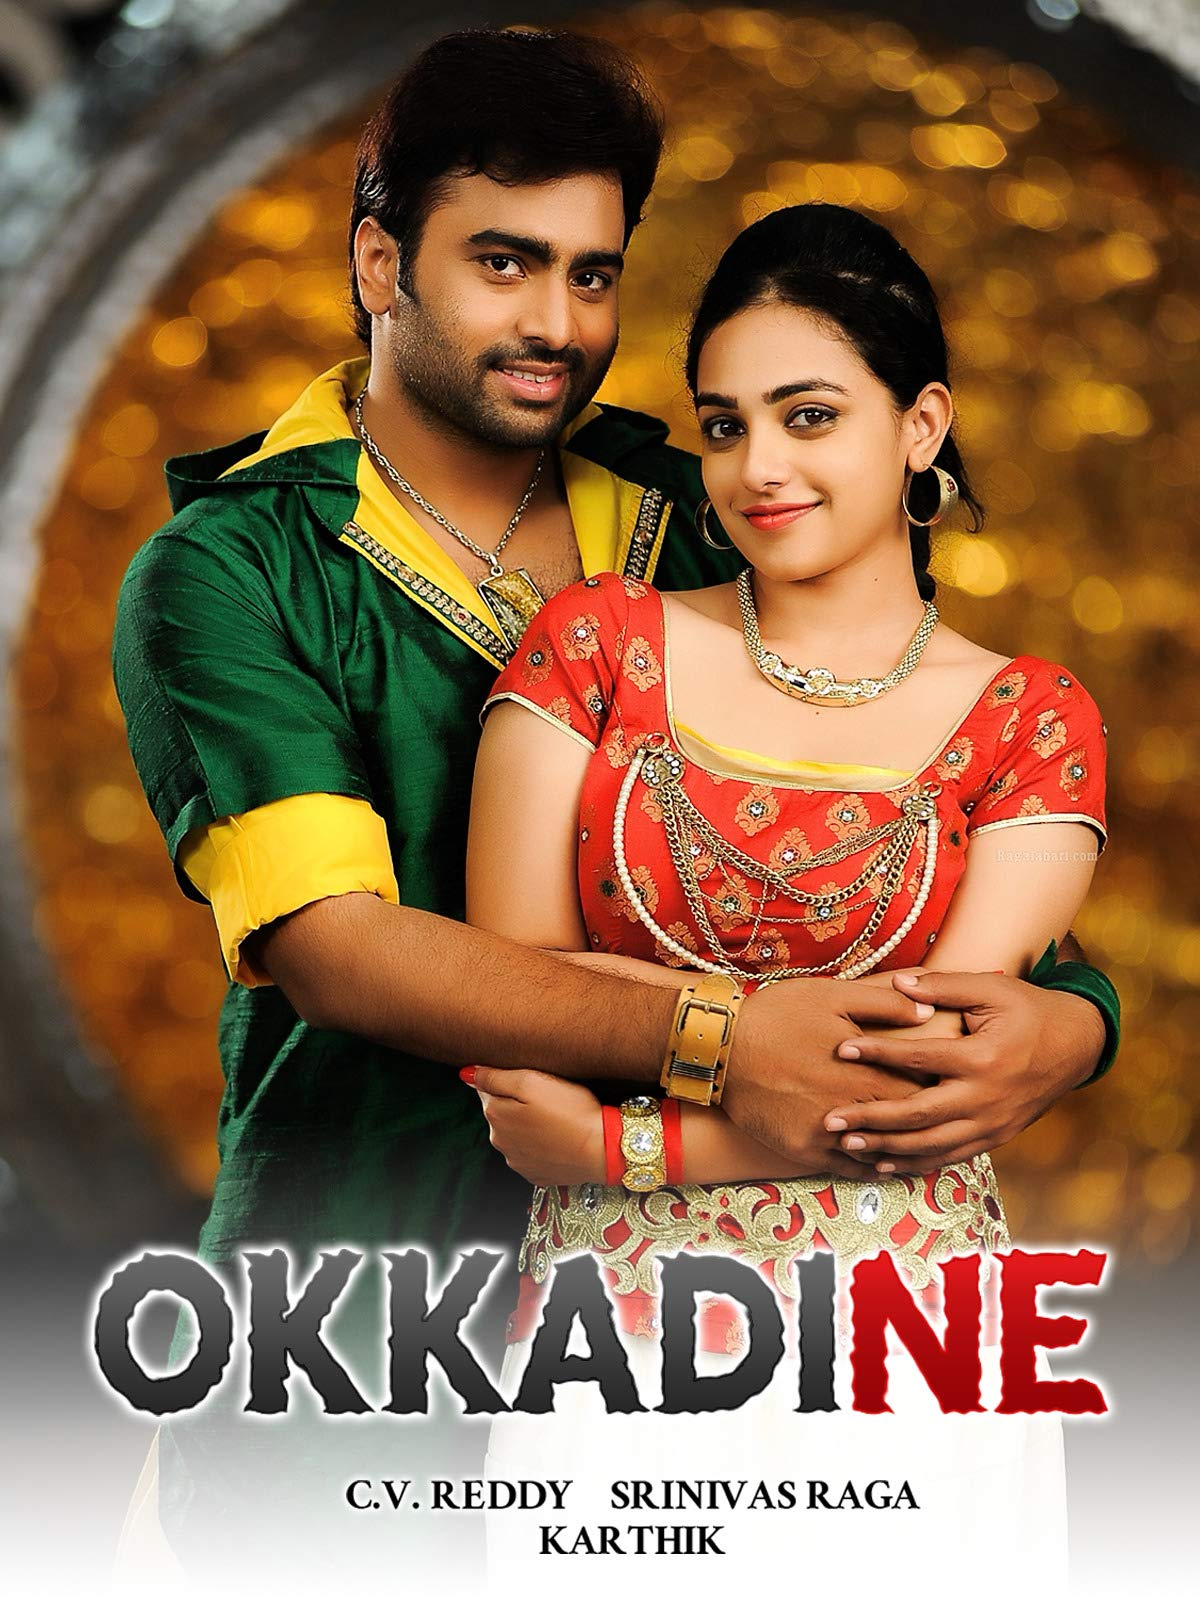 Aur Ek Dushman (Okkadine) 2020 Hindi Dubbed 720p HDRip 700MB